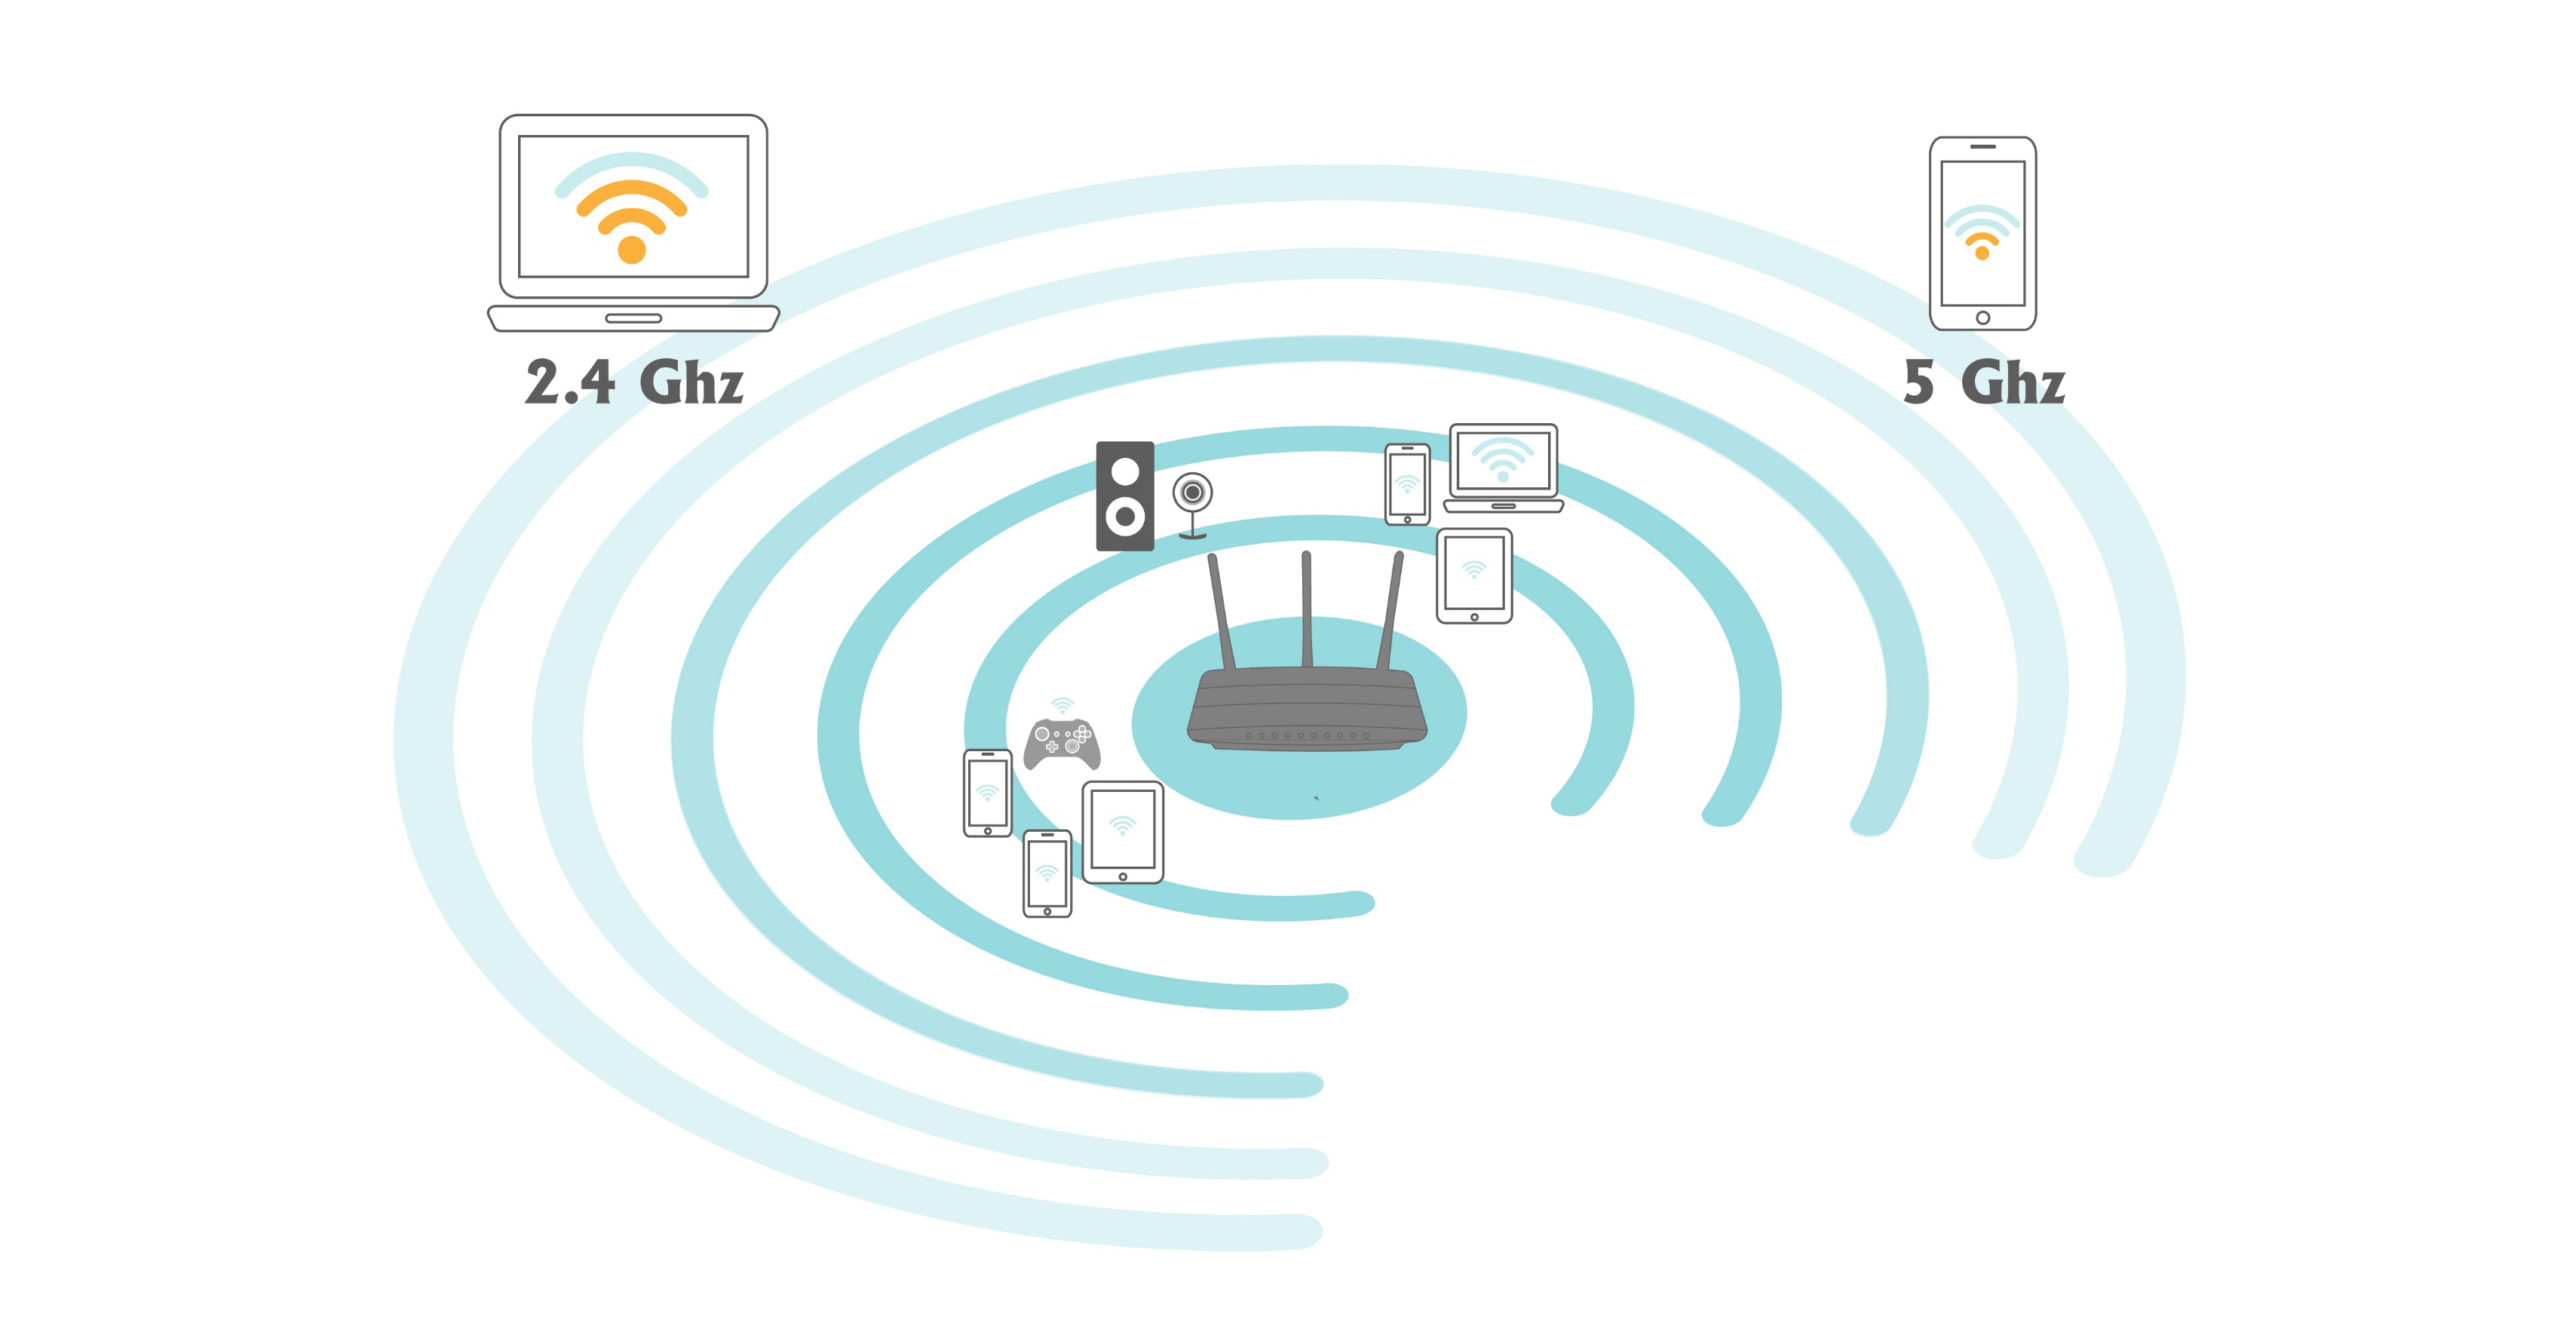 Porque Precisamos de Smart Connect em Routers Tri-Band?